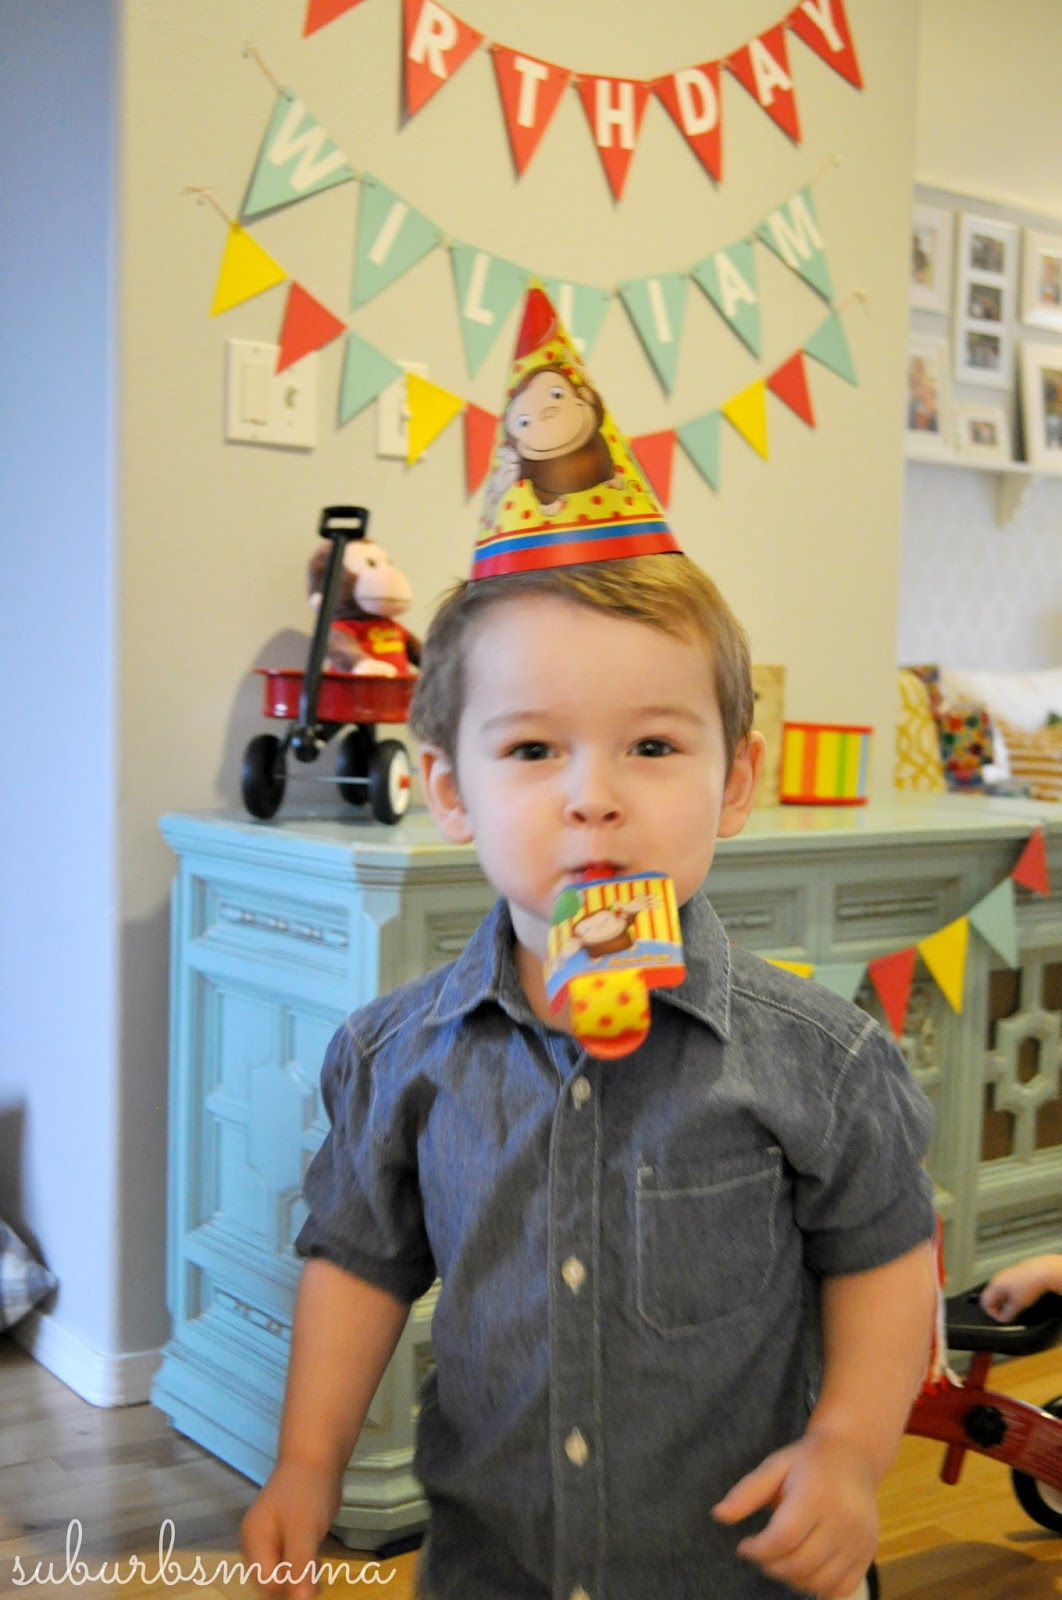 William Adores Curious George So Naturally We Went With For The Party Theme